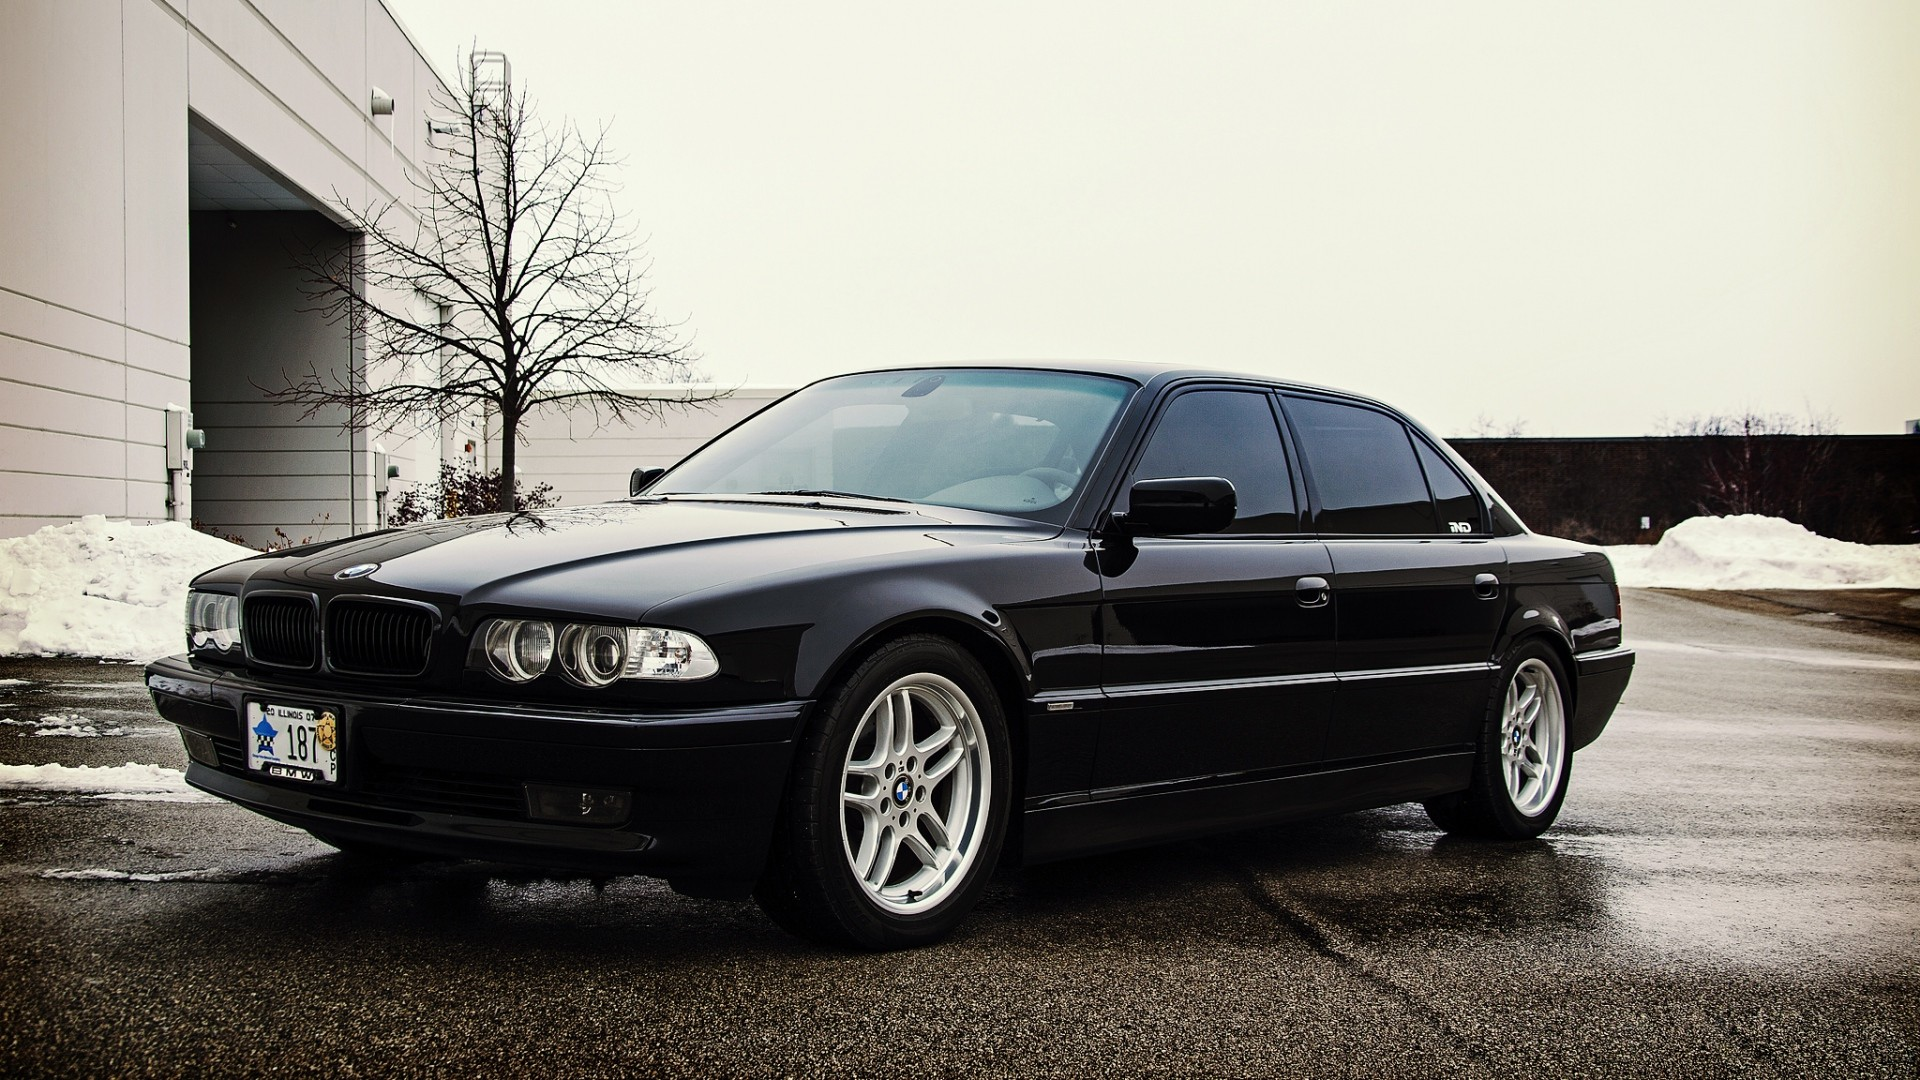 1920x1080 Bmw-E-i--Need-iPhone-S-Plus-Background-